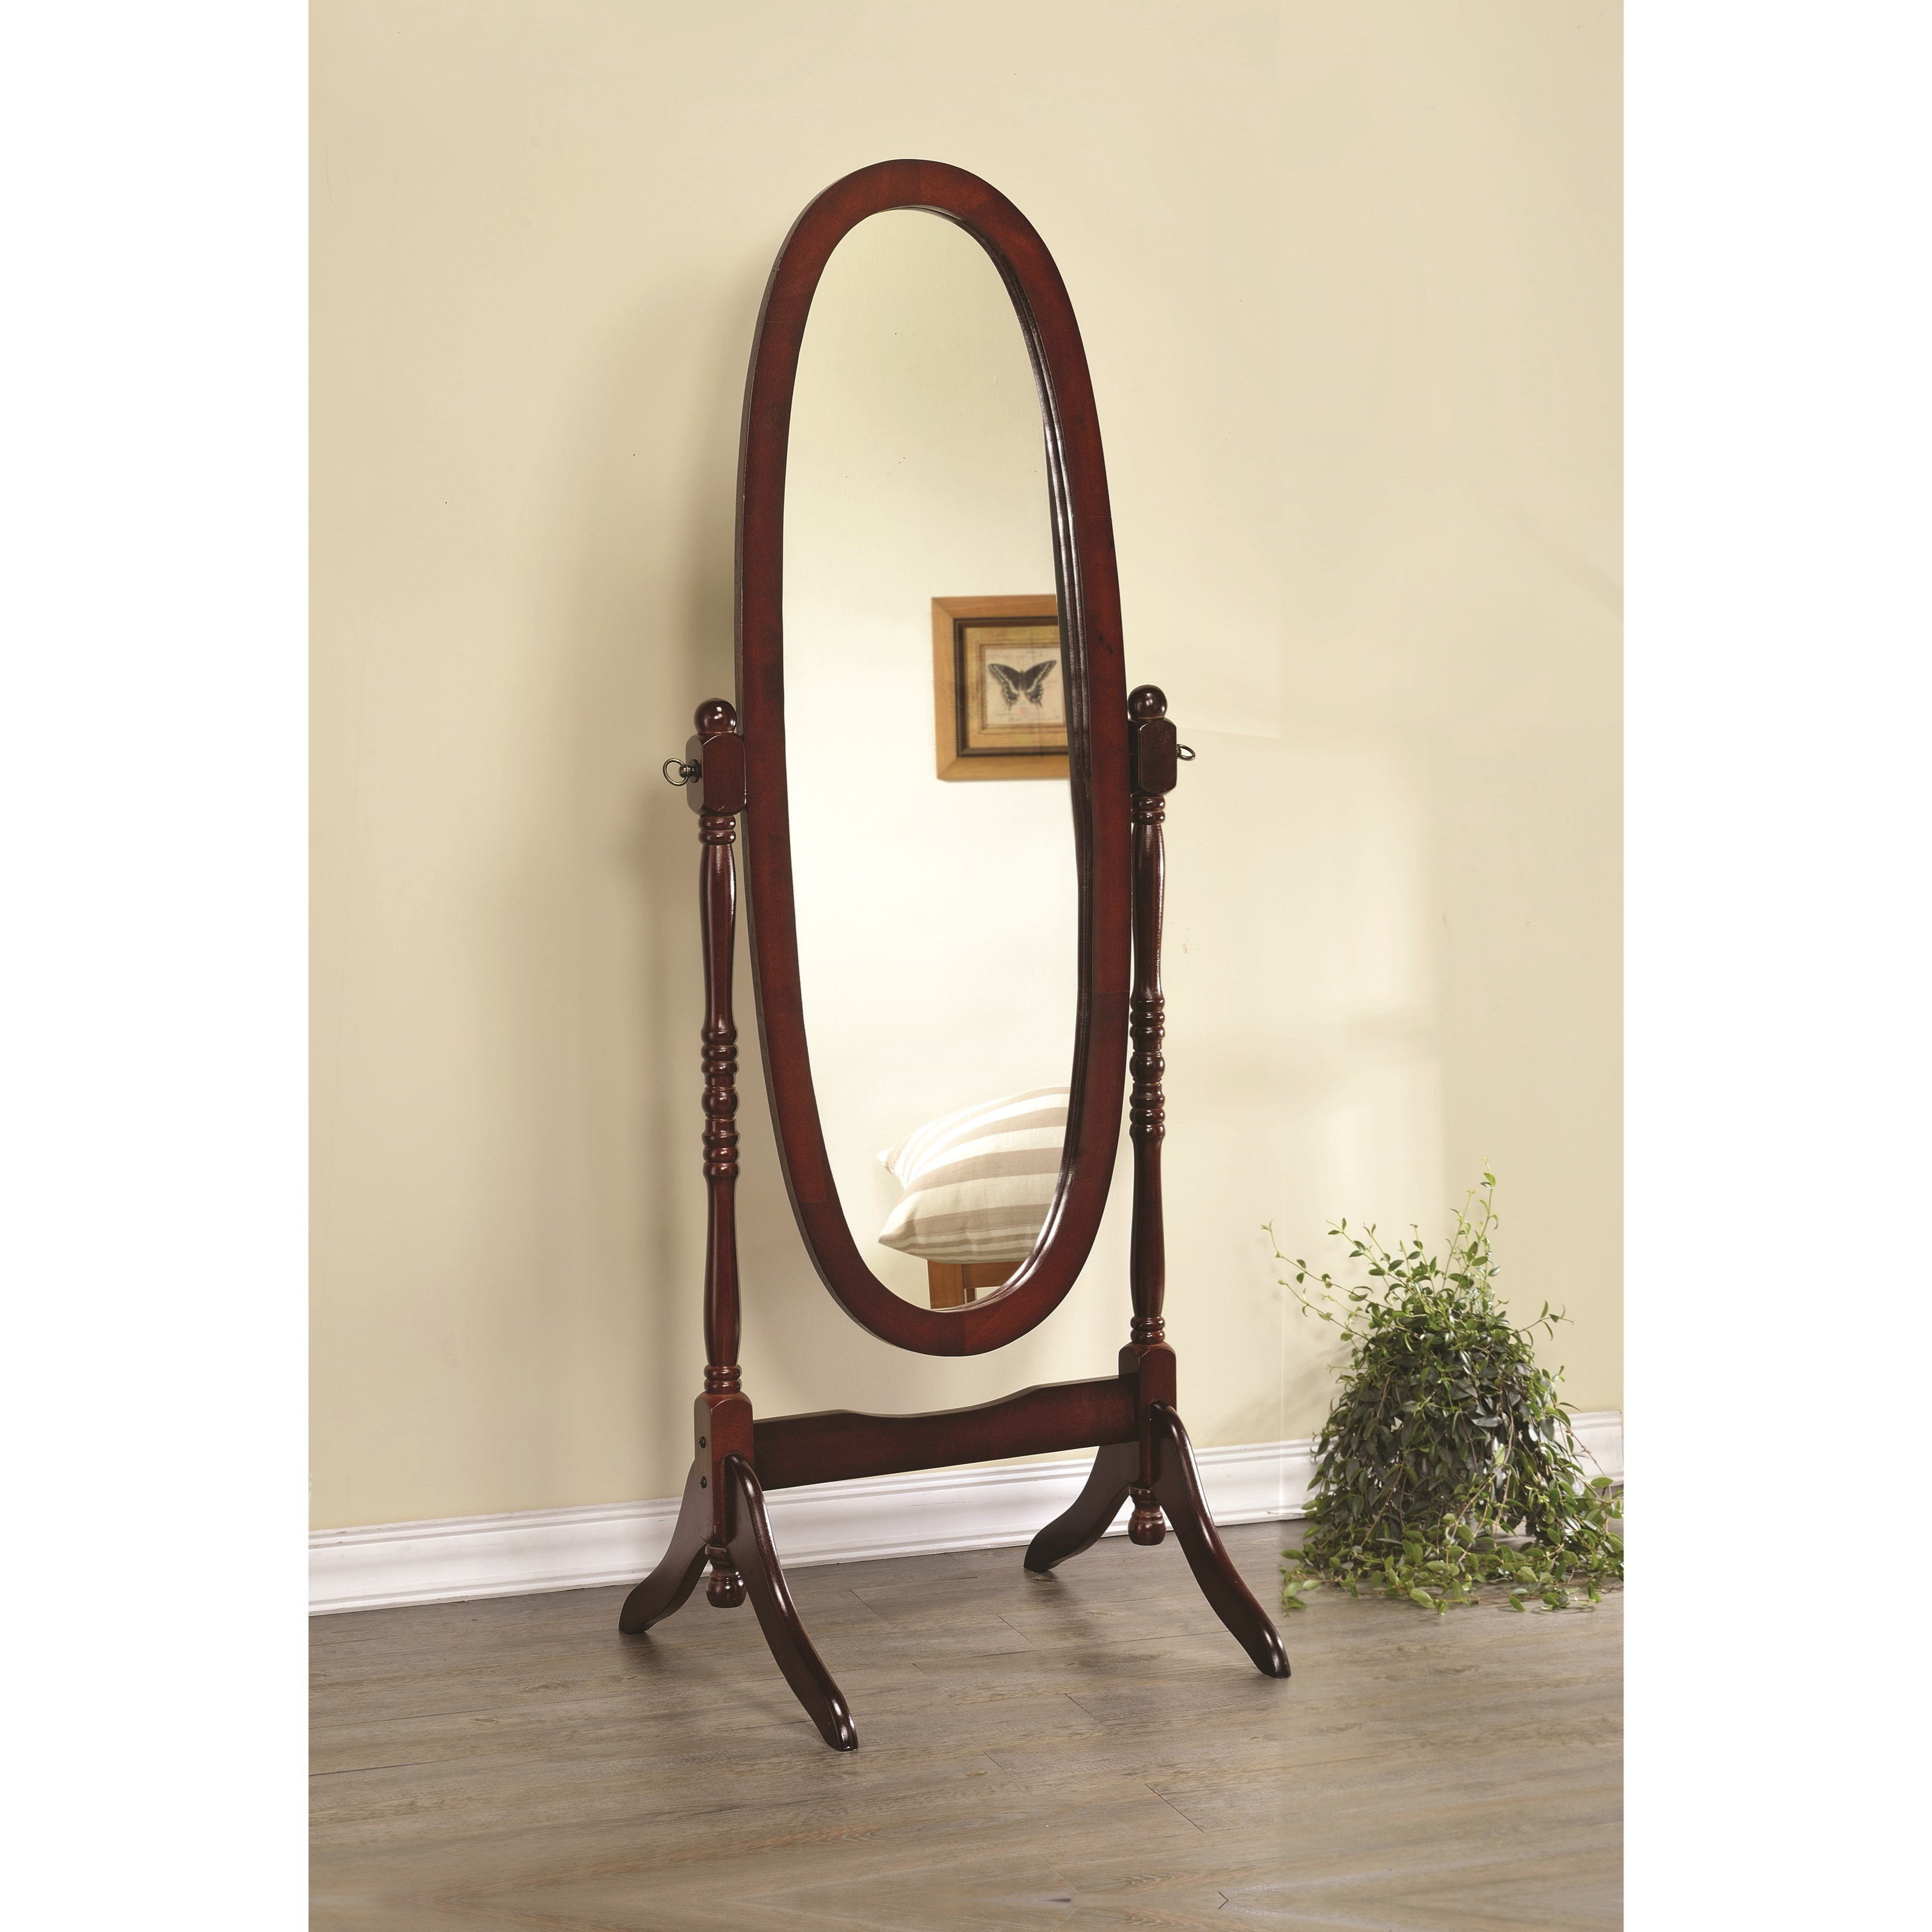 Coaster Accent Mirrors Cheval Mirror - Item Number: 3101